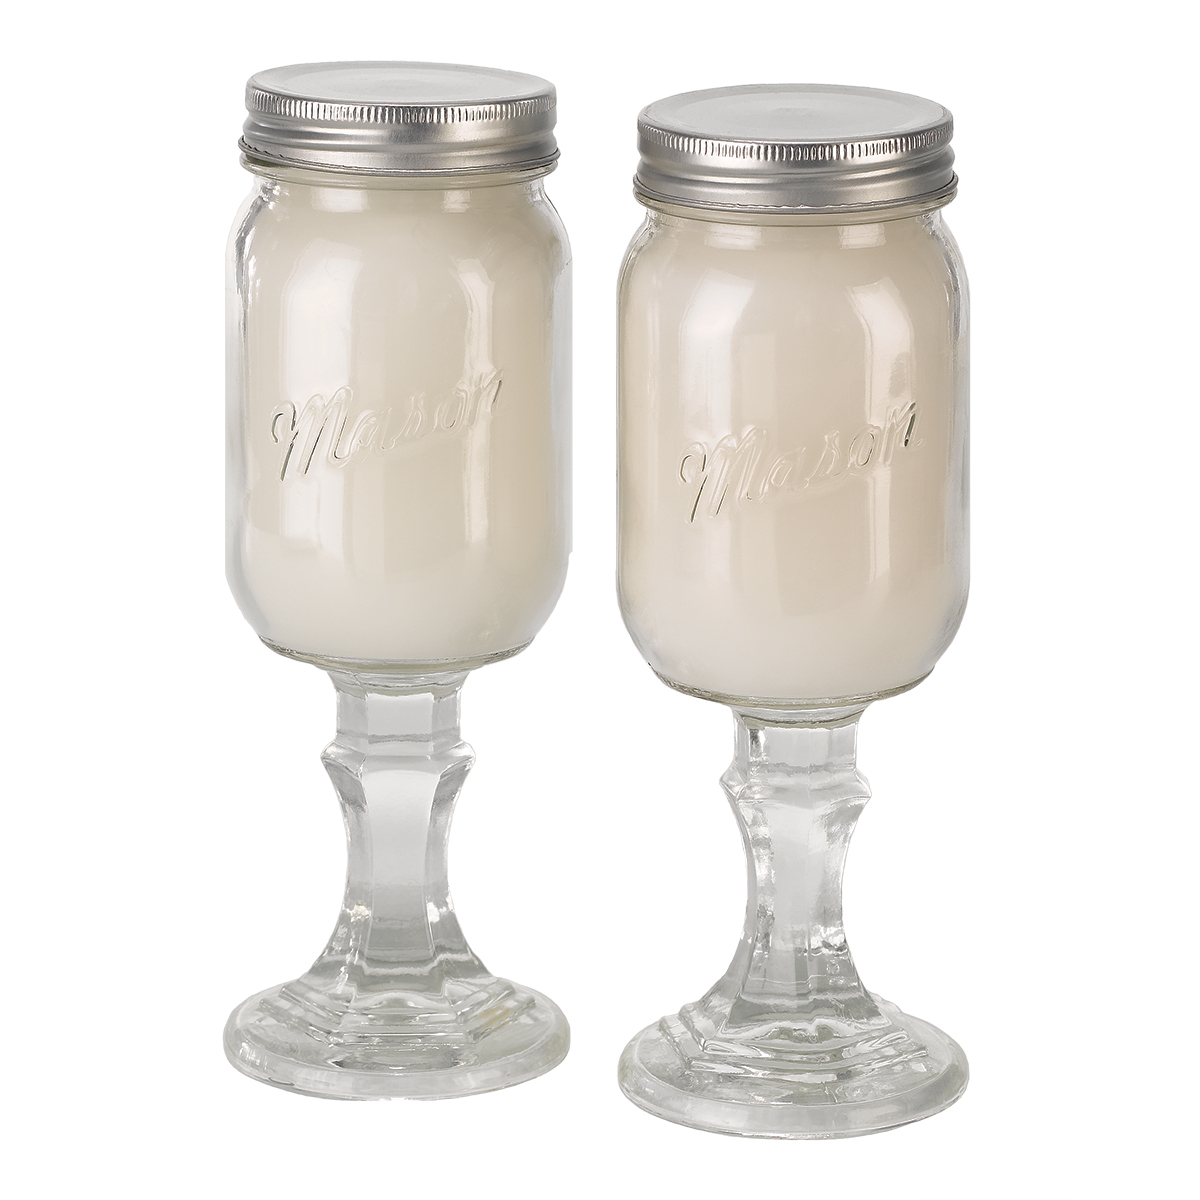 Country Candles - Set of 2 - Gardenia